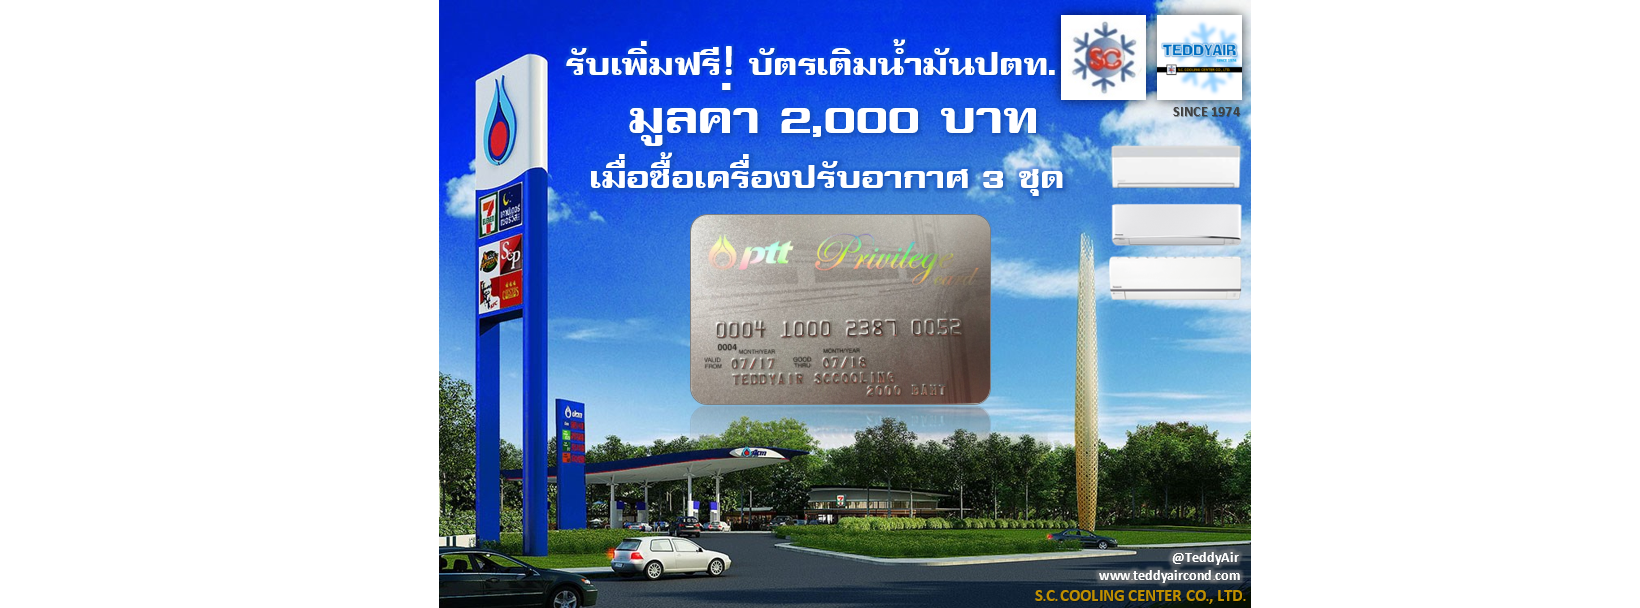 Free PTT Priviledge card 2000฿ if buy 3 units TeddyAir SCcooling